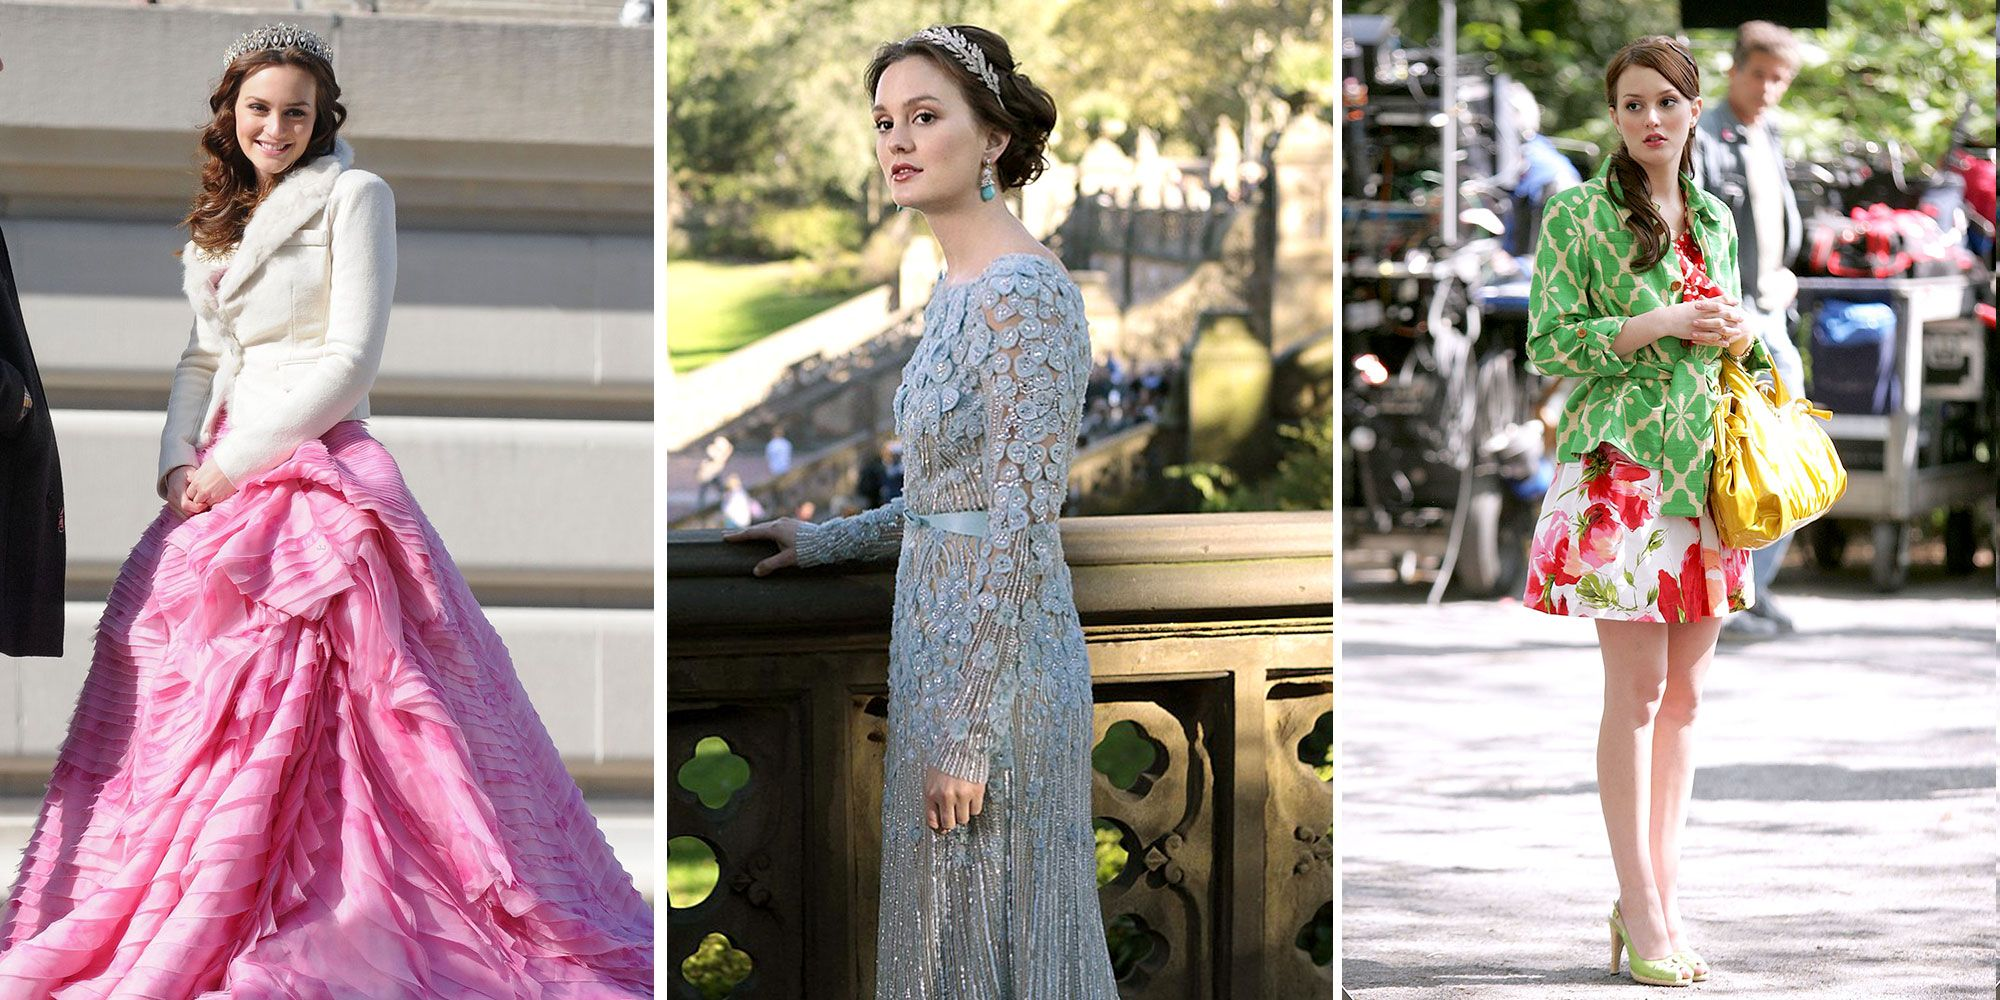 554c0dba077 44 Blair Waldorf Fashion Moments You Forgot You Were Obsessed With on Gossip  Girl